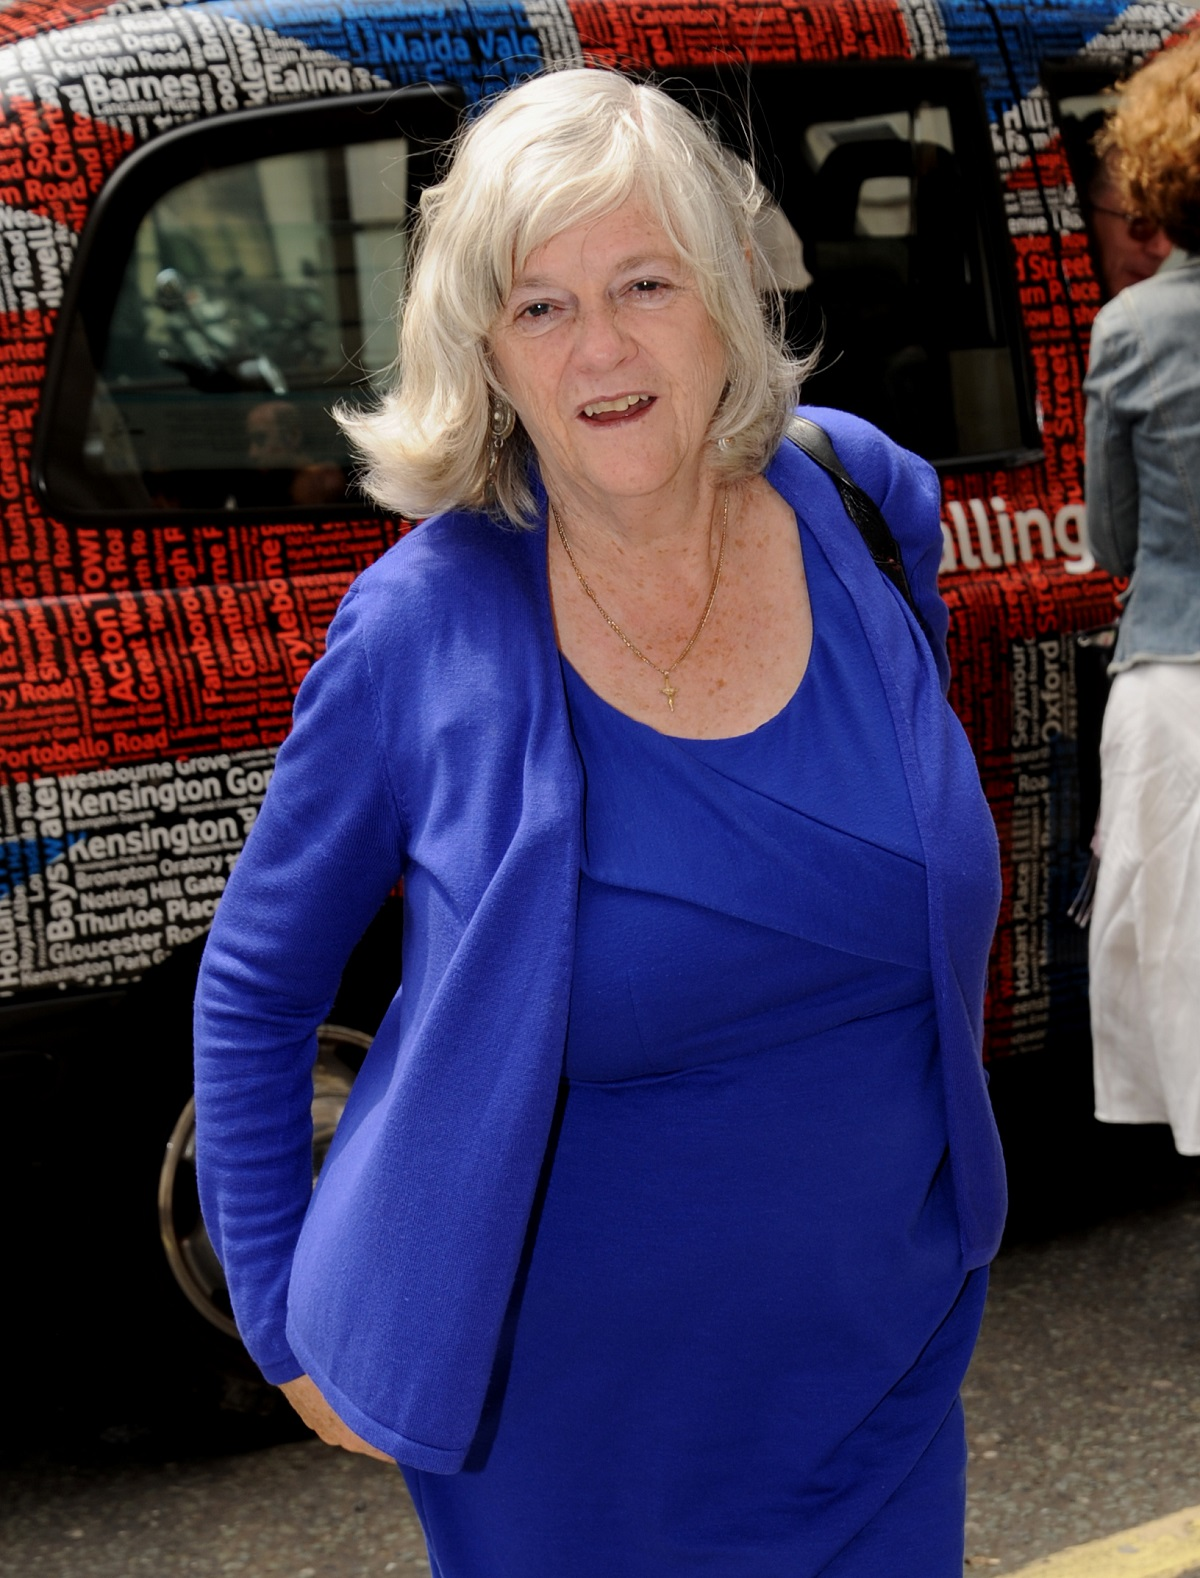 Candid shot of Ann Widdecombe at the BBC Studios in 2013